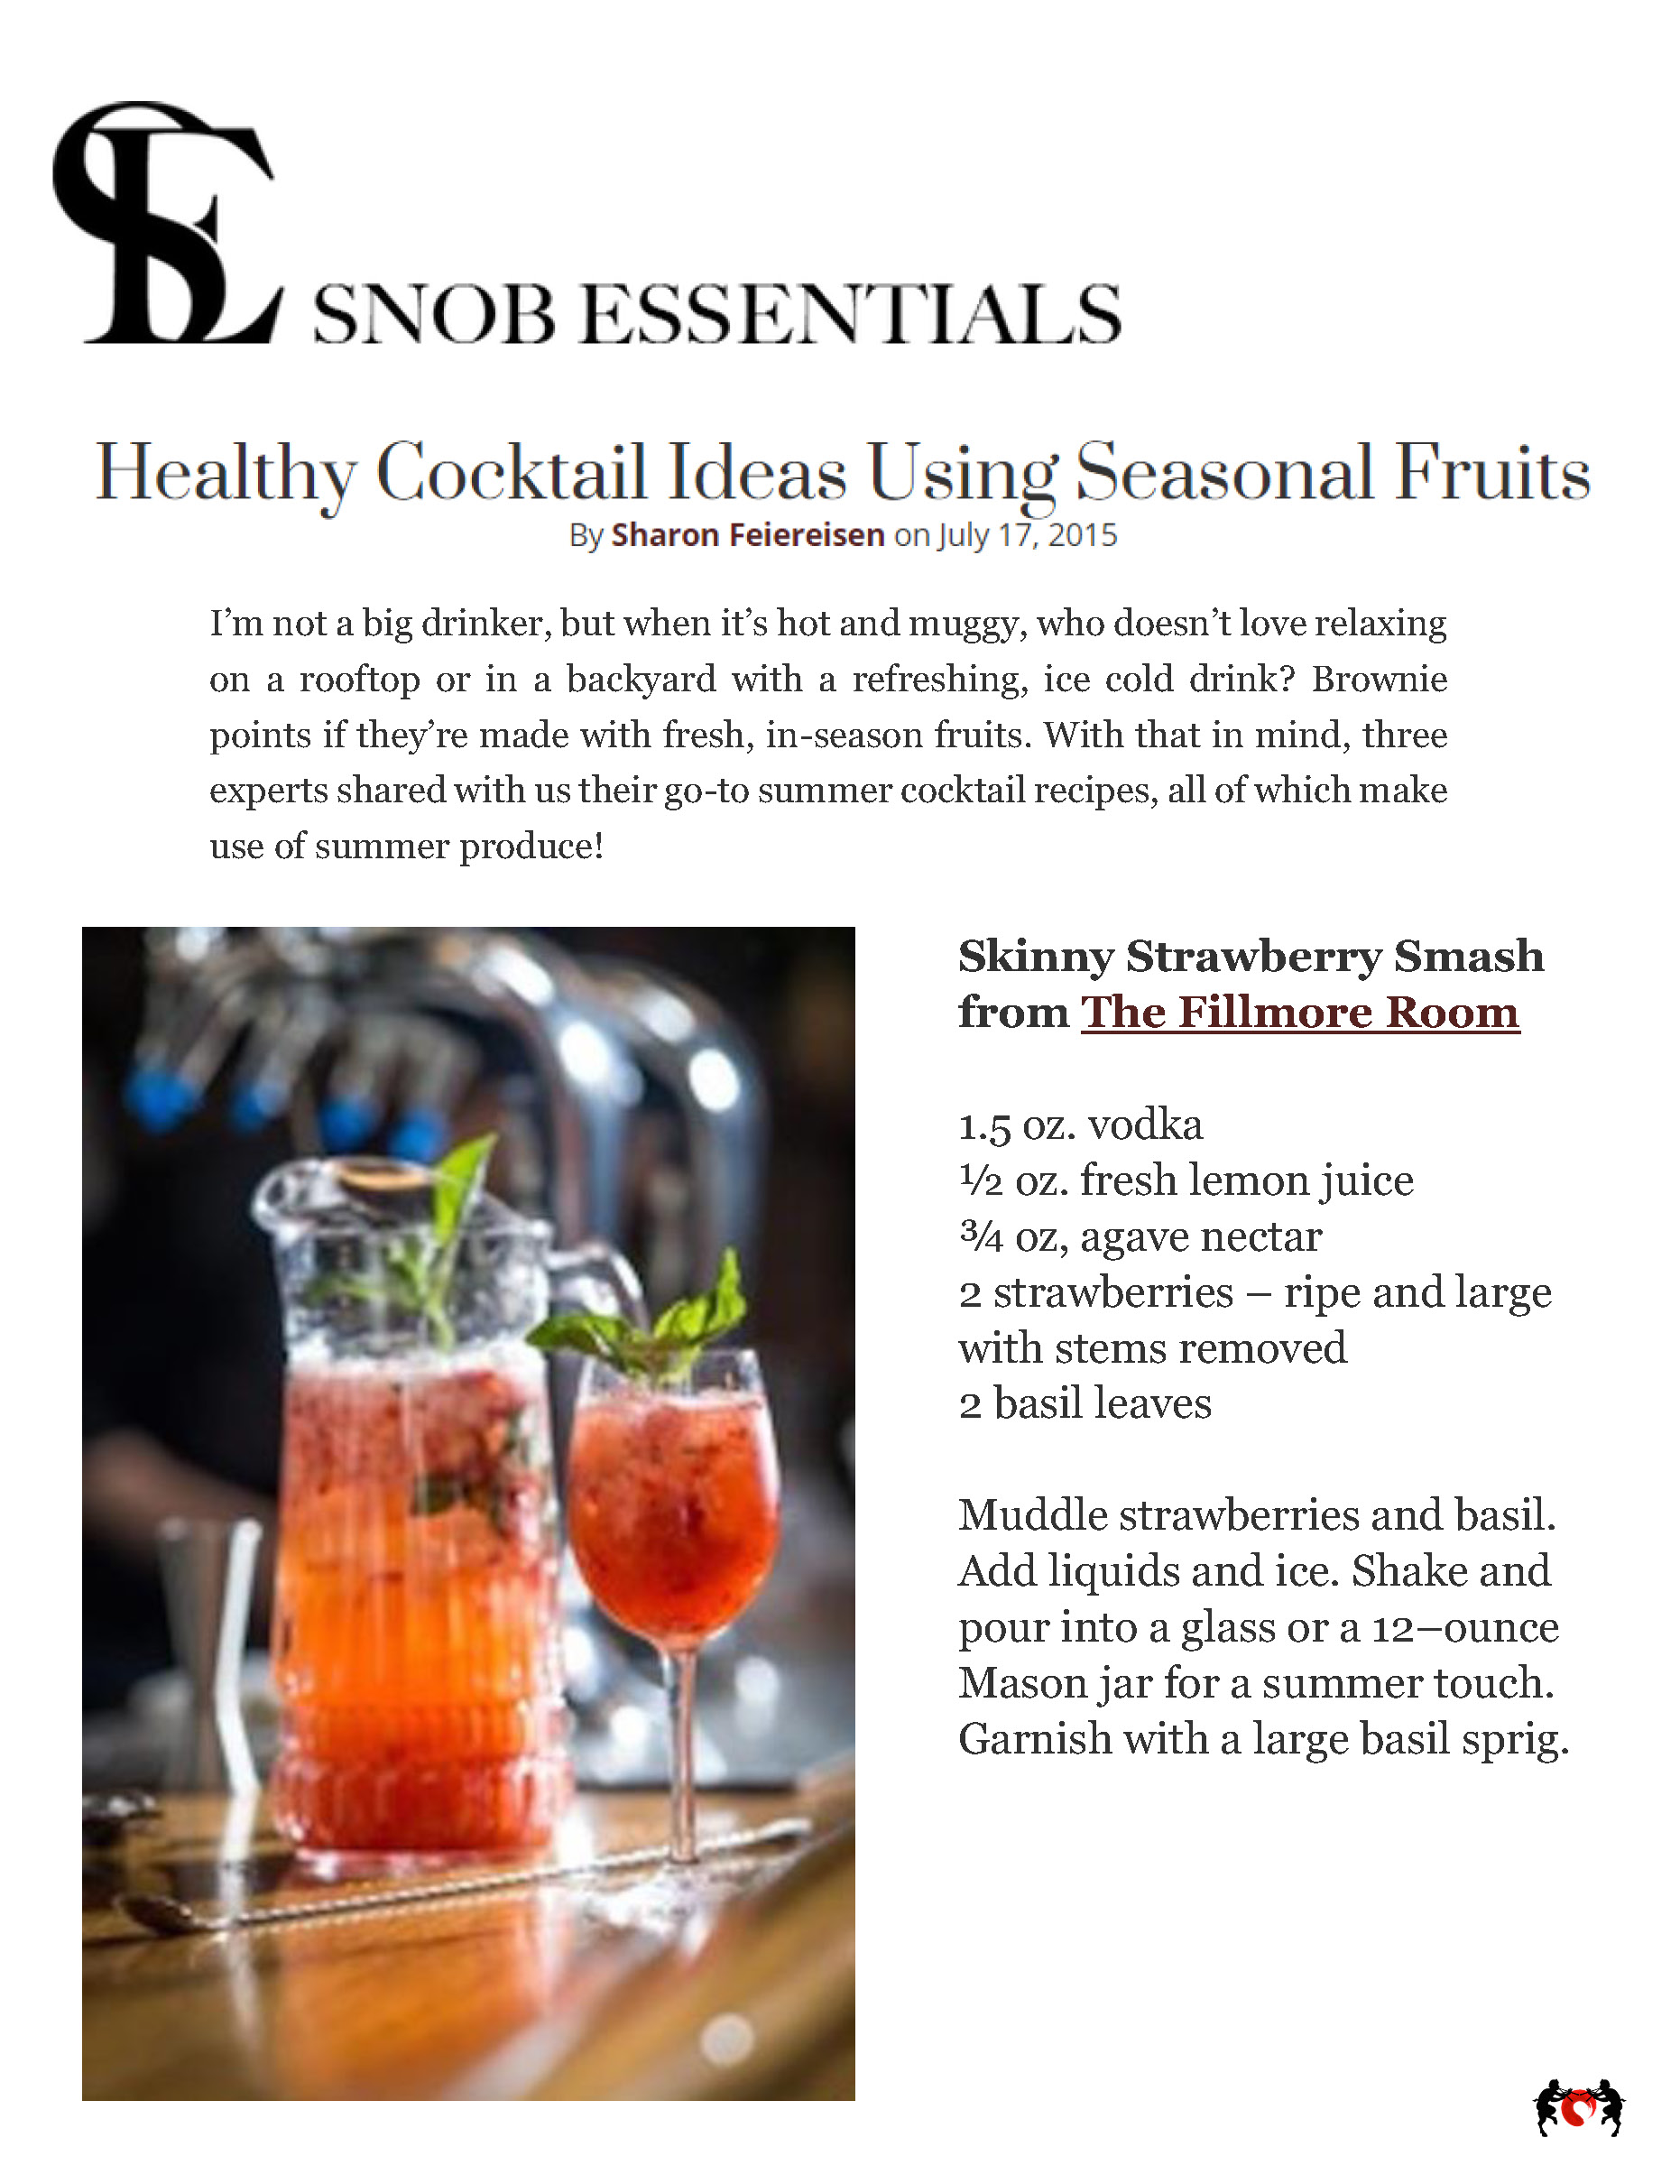 The Fillmore Room SnobEssentials.com Healthy Cocktail Ideas 7 17 15.jpg